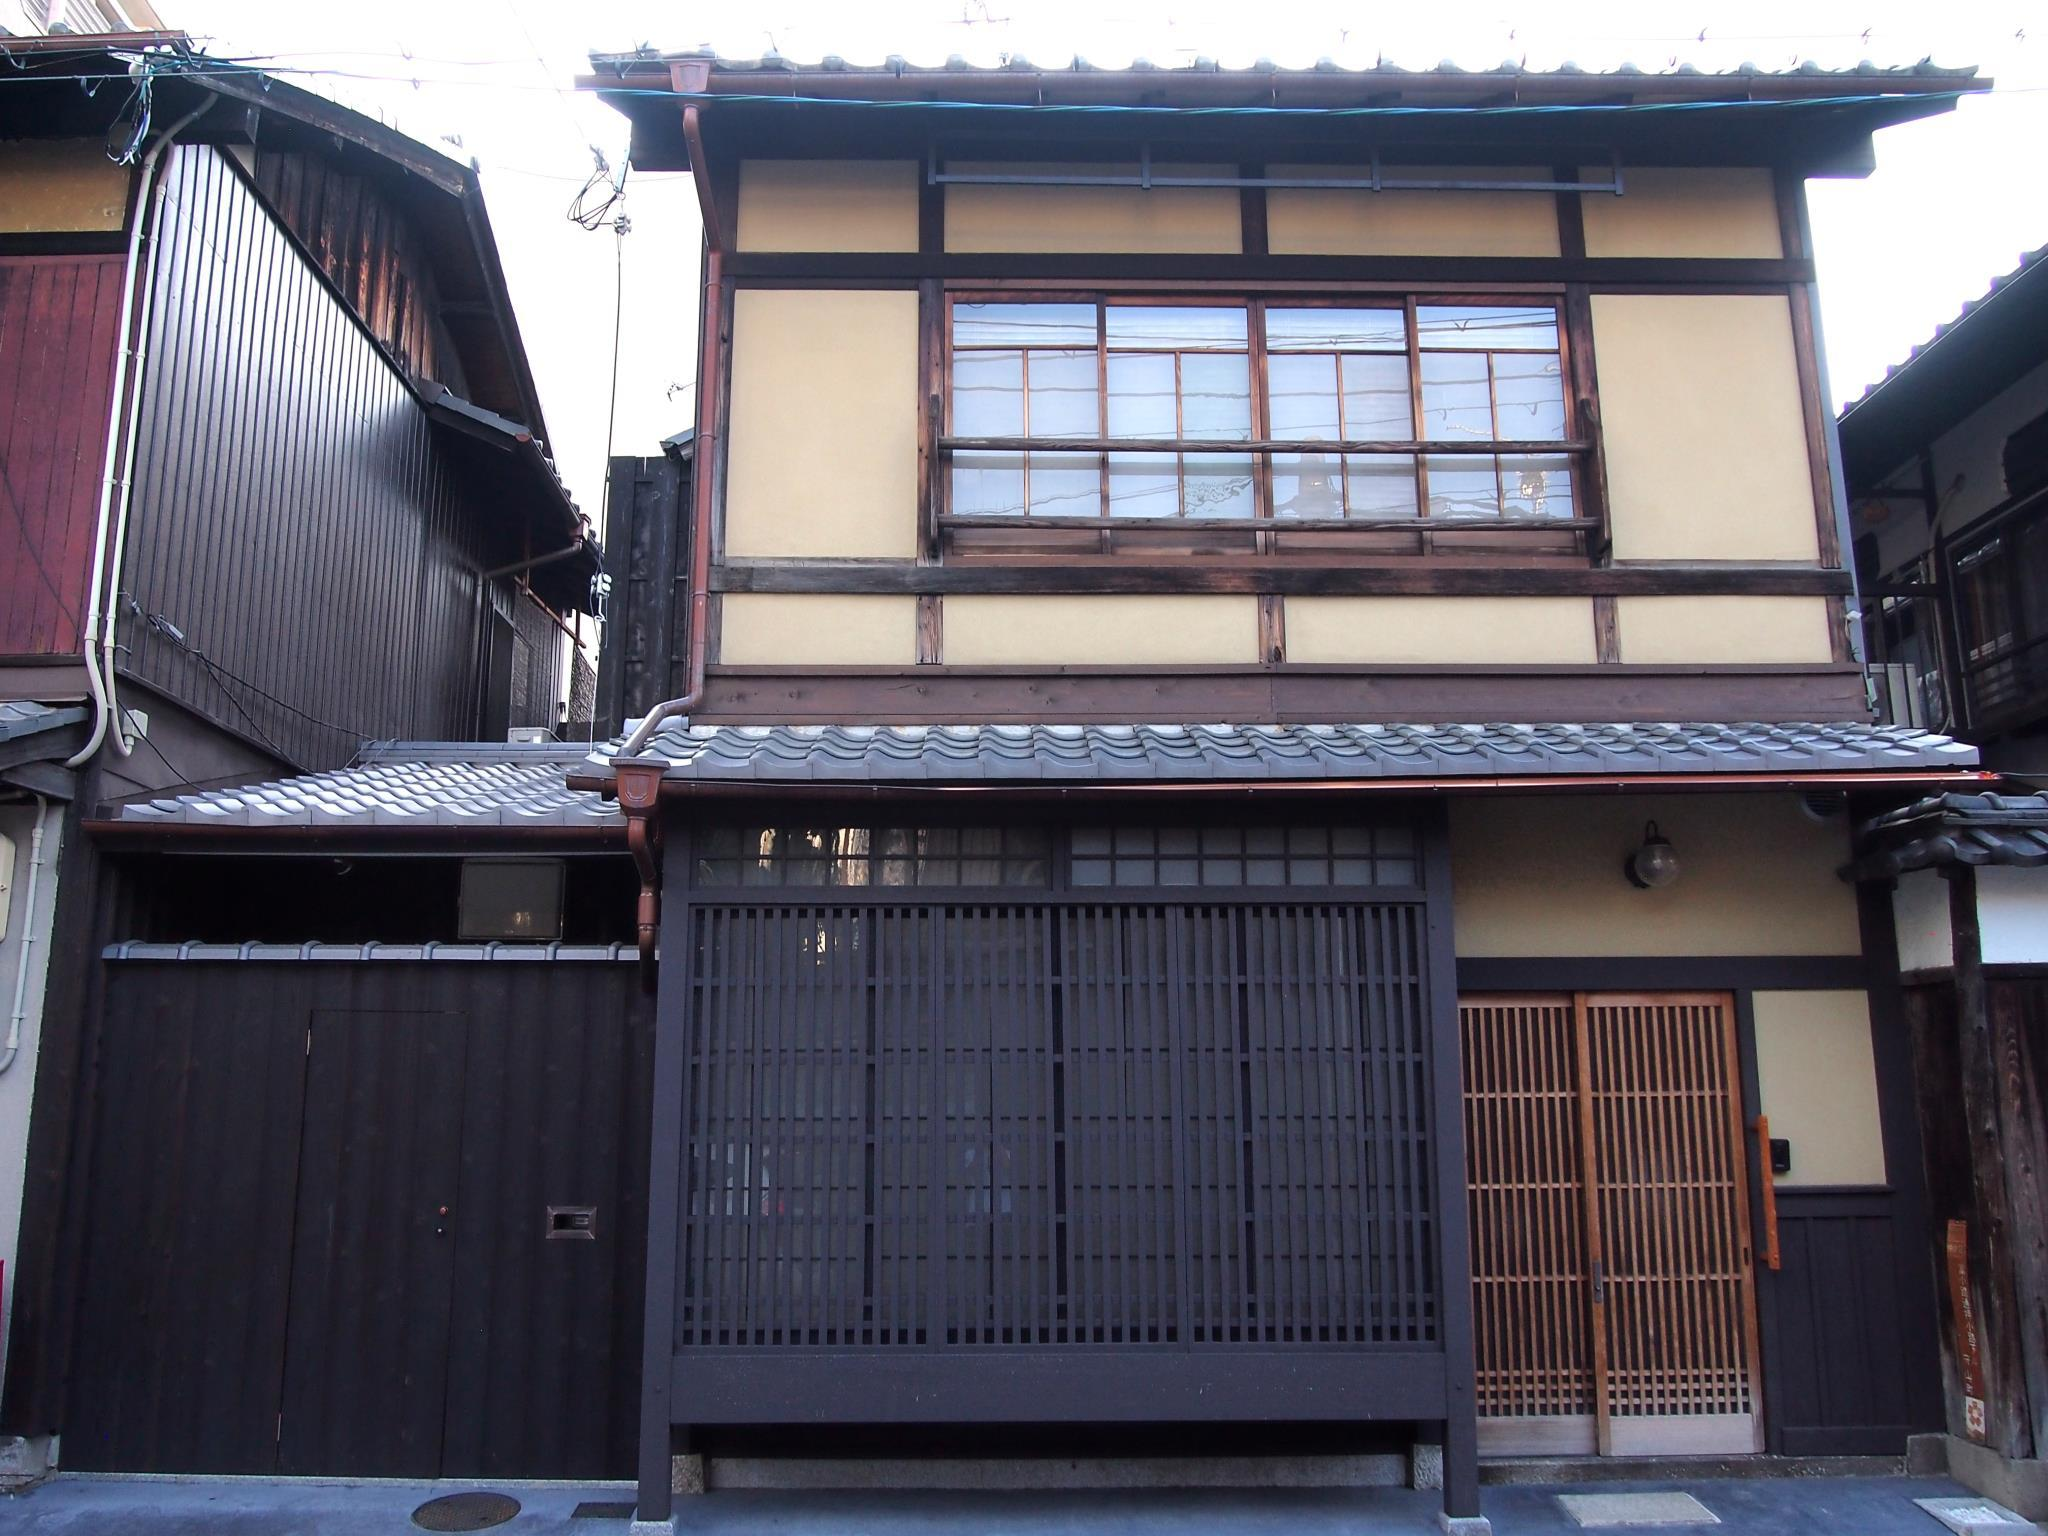 Legal  Traditional House In Downtown Ichimatsu An